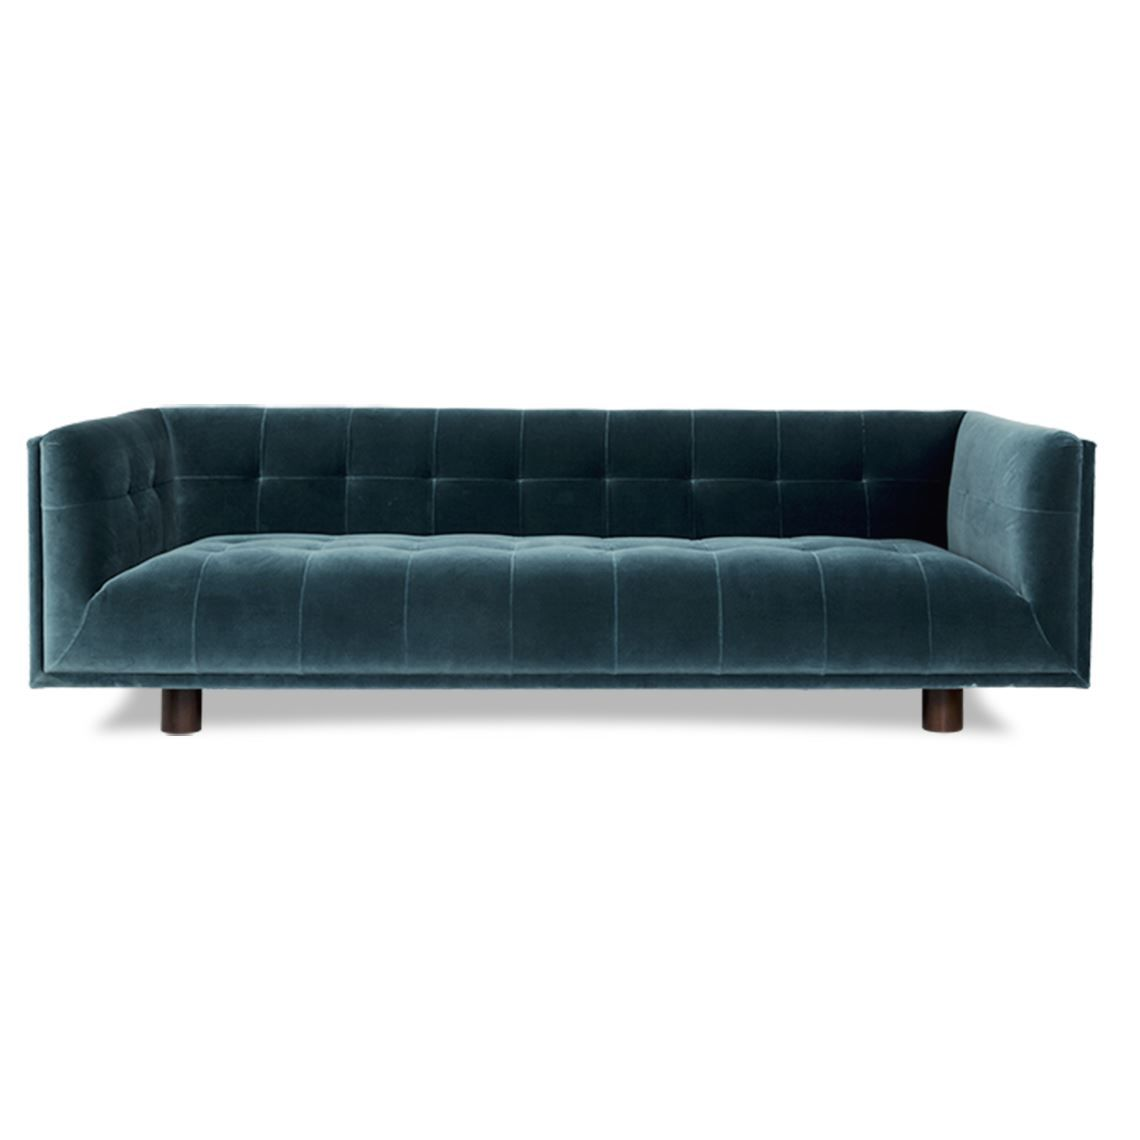 Couch Petrol Keely 3 Seat Velvet Sofa Petrol Products In 2019 Velvet Sofa